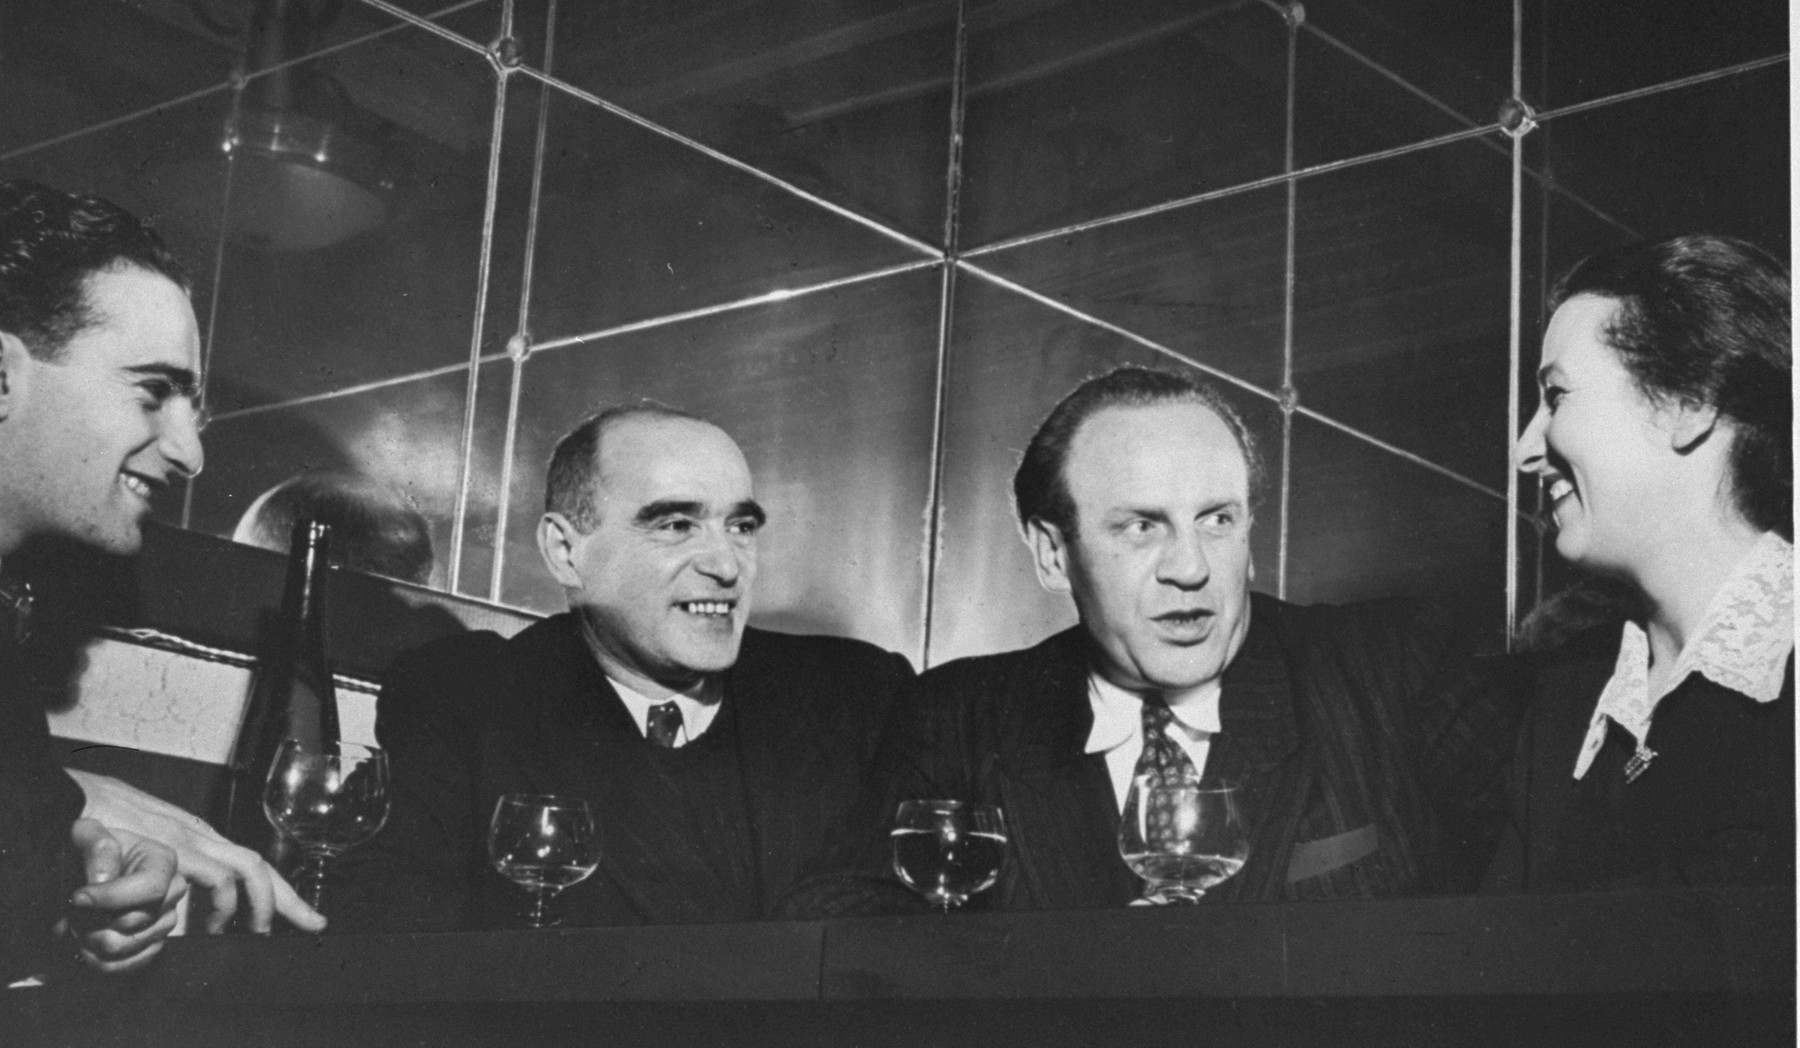 "Early in 1949, a group of some 35 ""Schindlerjuden"" gathered privately at Aux Armes de Colmar, an Alsatian restaurant in the north of Paris, to celebrate their friend Oskar Schindler, who was then passing through the city. Itzhak Stern sits next to Oskar Schindler."